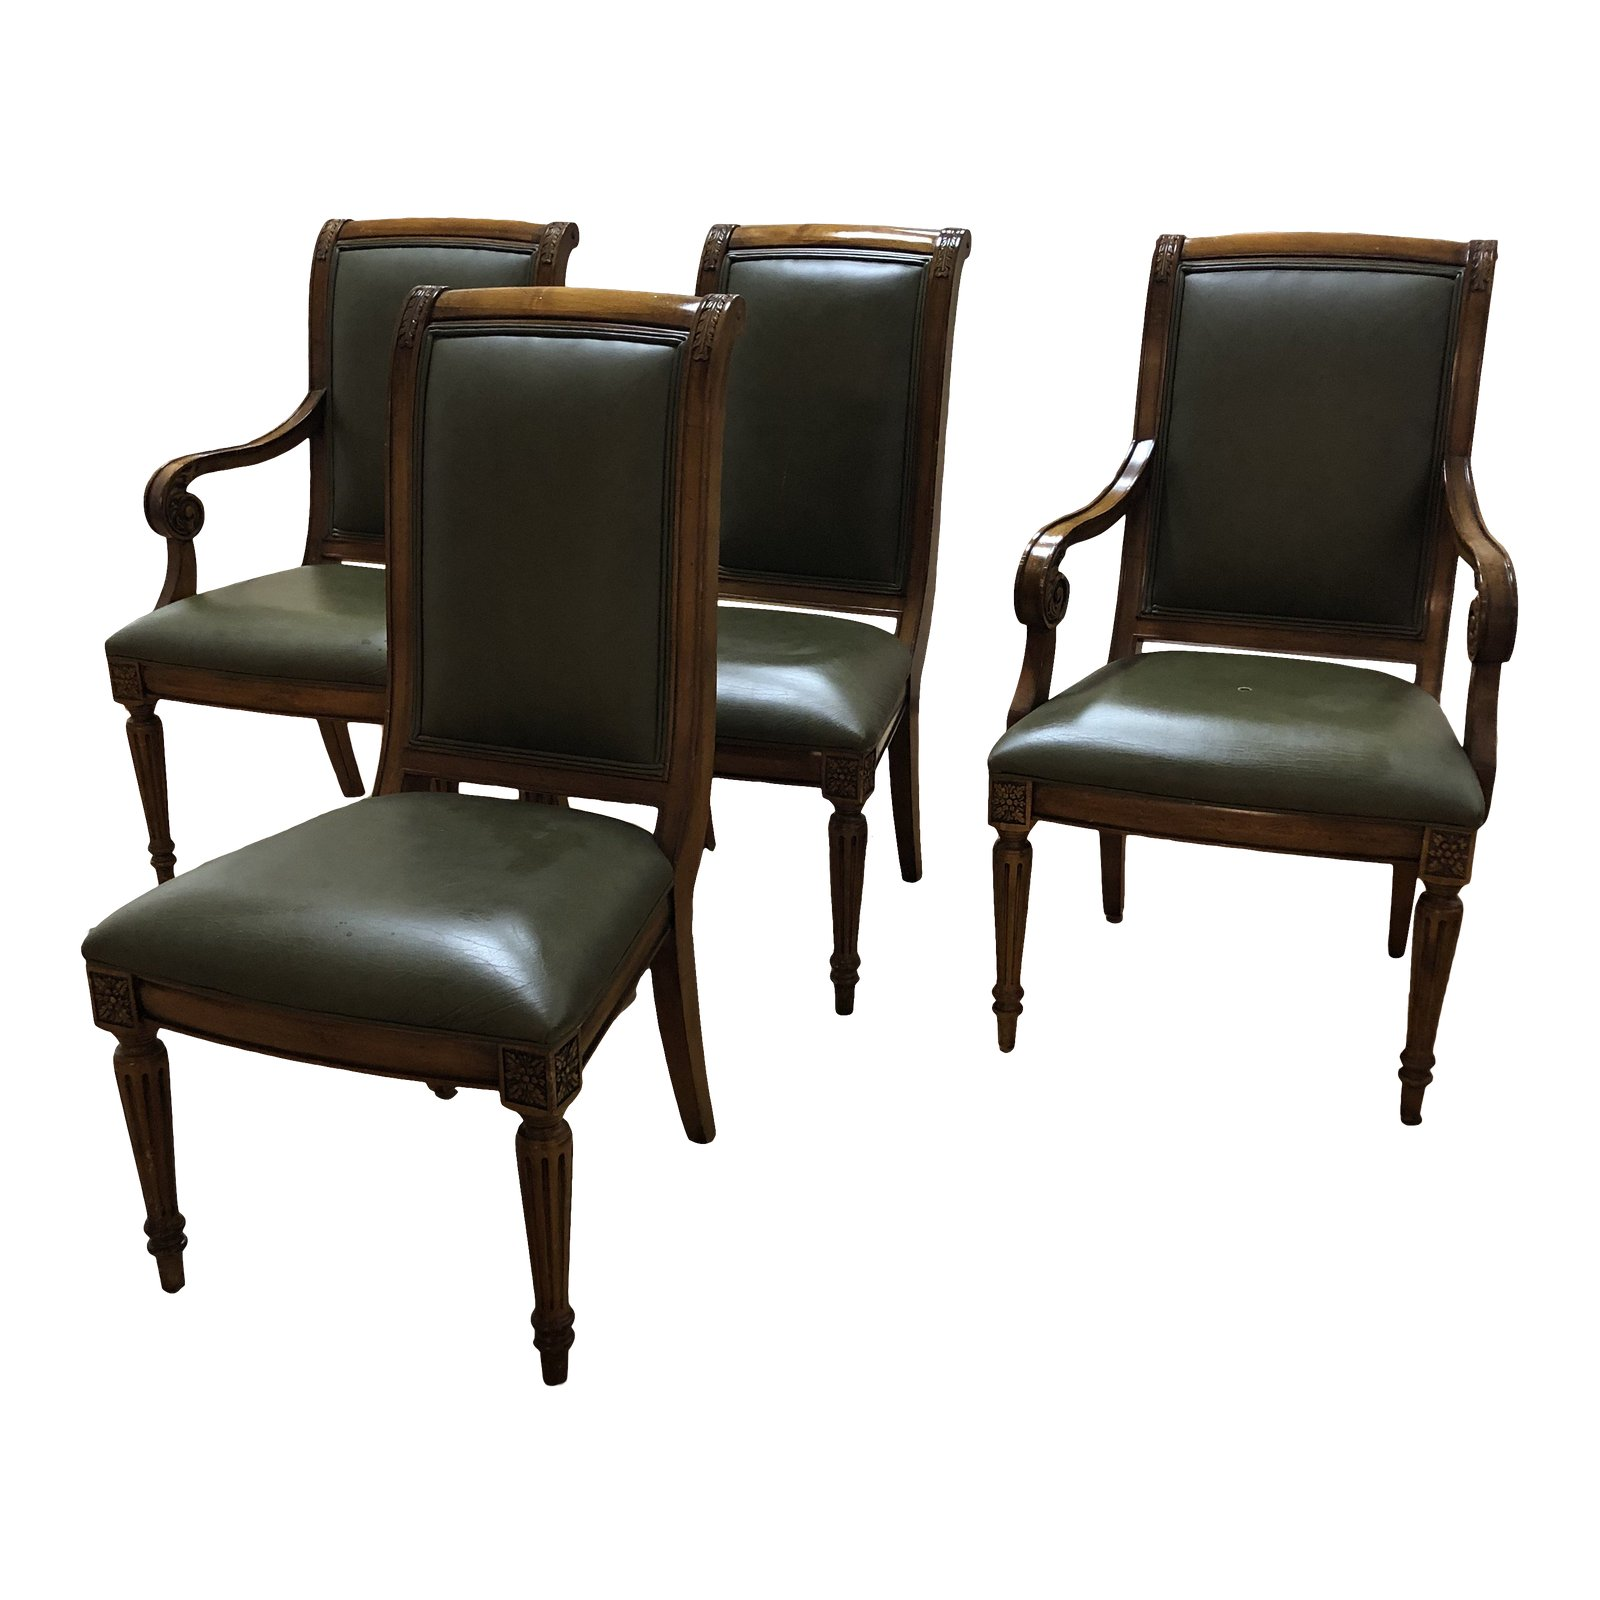 Ethan Allen Club Chairs Ethan Allen Leather Adison Chairs Set Of 4 Original Price 2 876 Design Plus Gallery